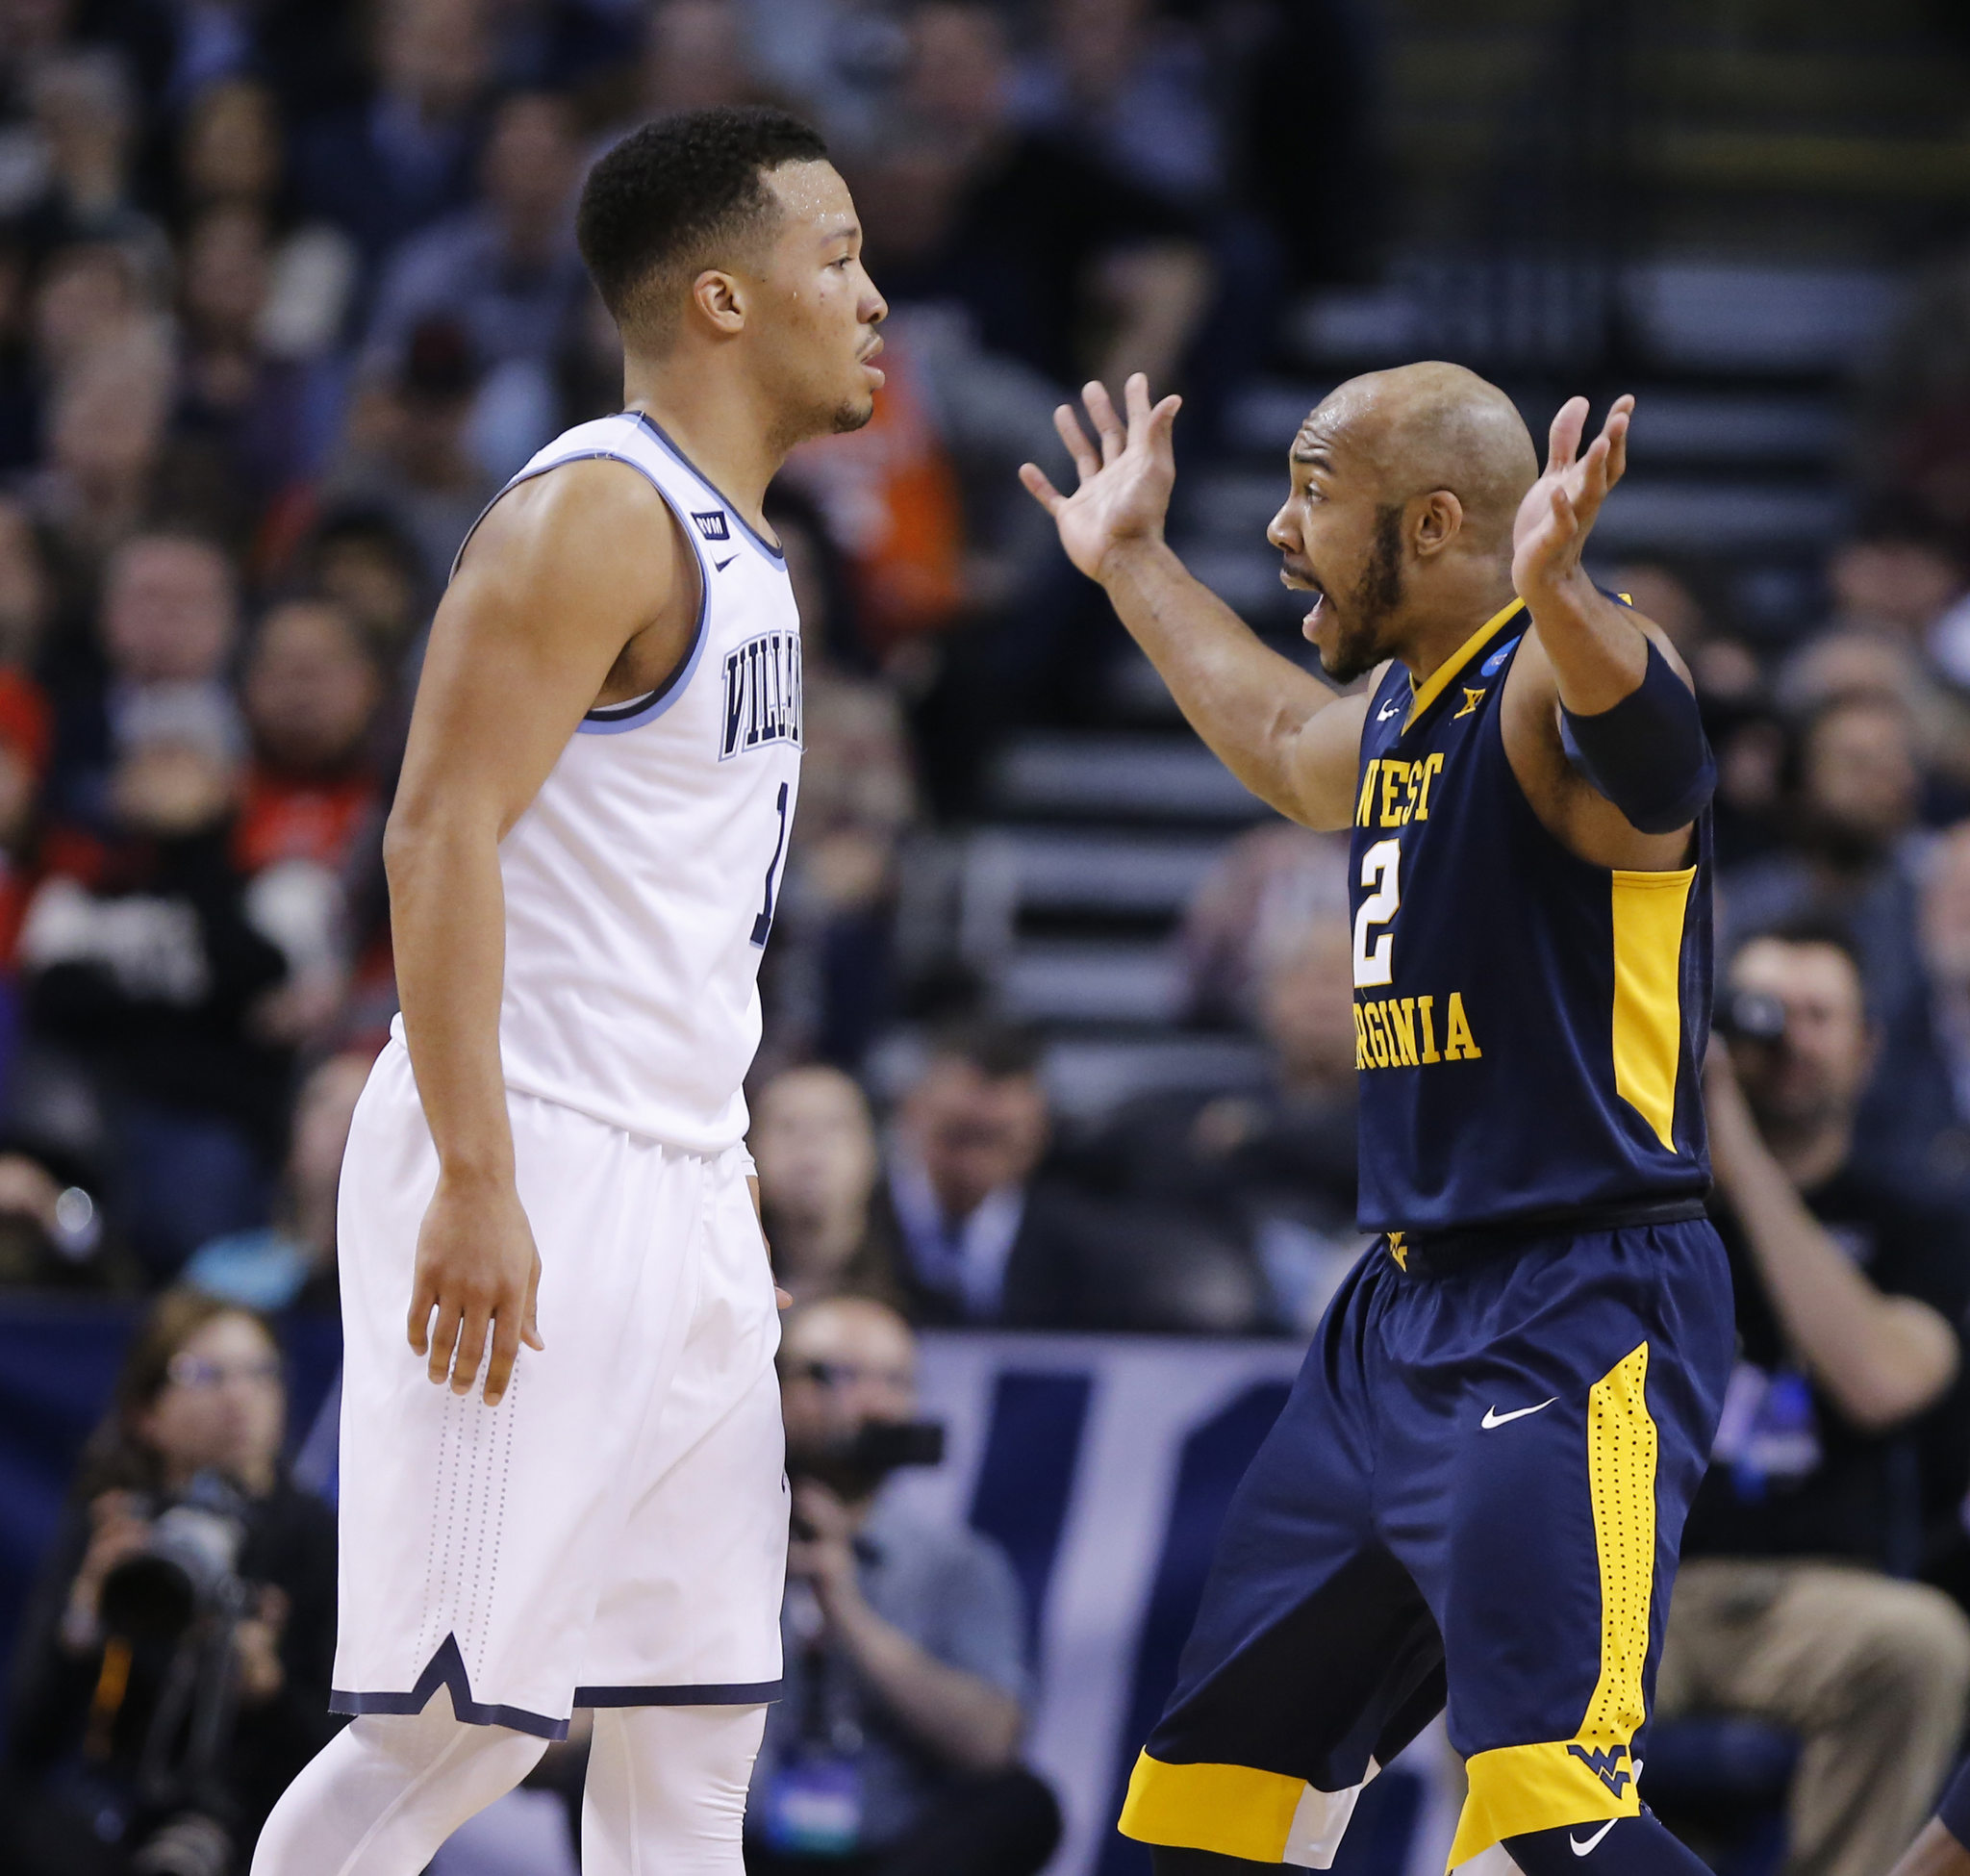 Jevon Carter, right, of West Virginia argues with a referee after being called for a foul while guarding Jalen Brunson, left of Villanova during the East Regionals of the NCAA Tournament at TD Garden on March 23, 2018.